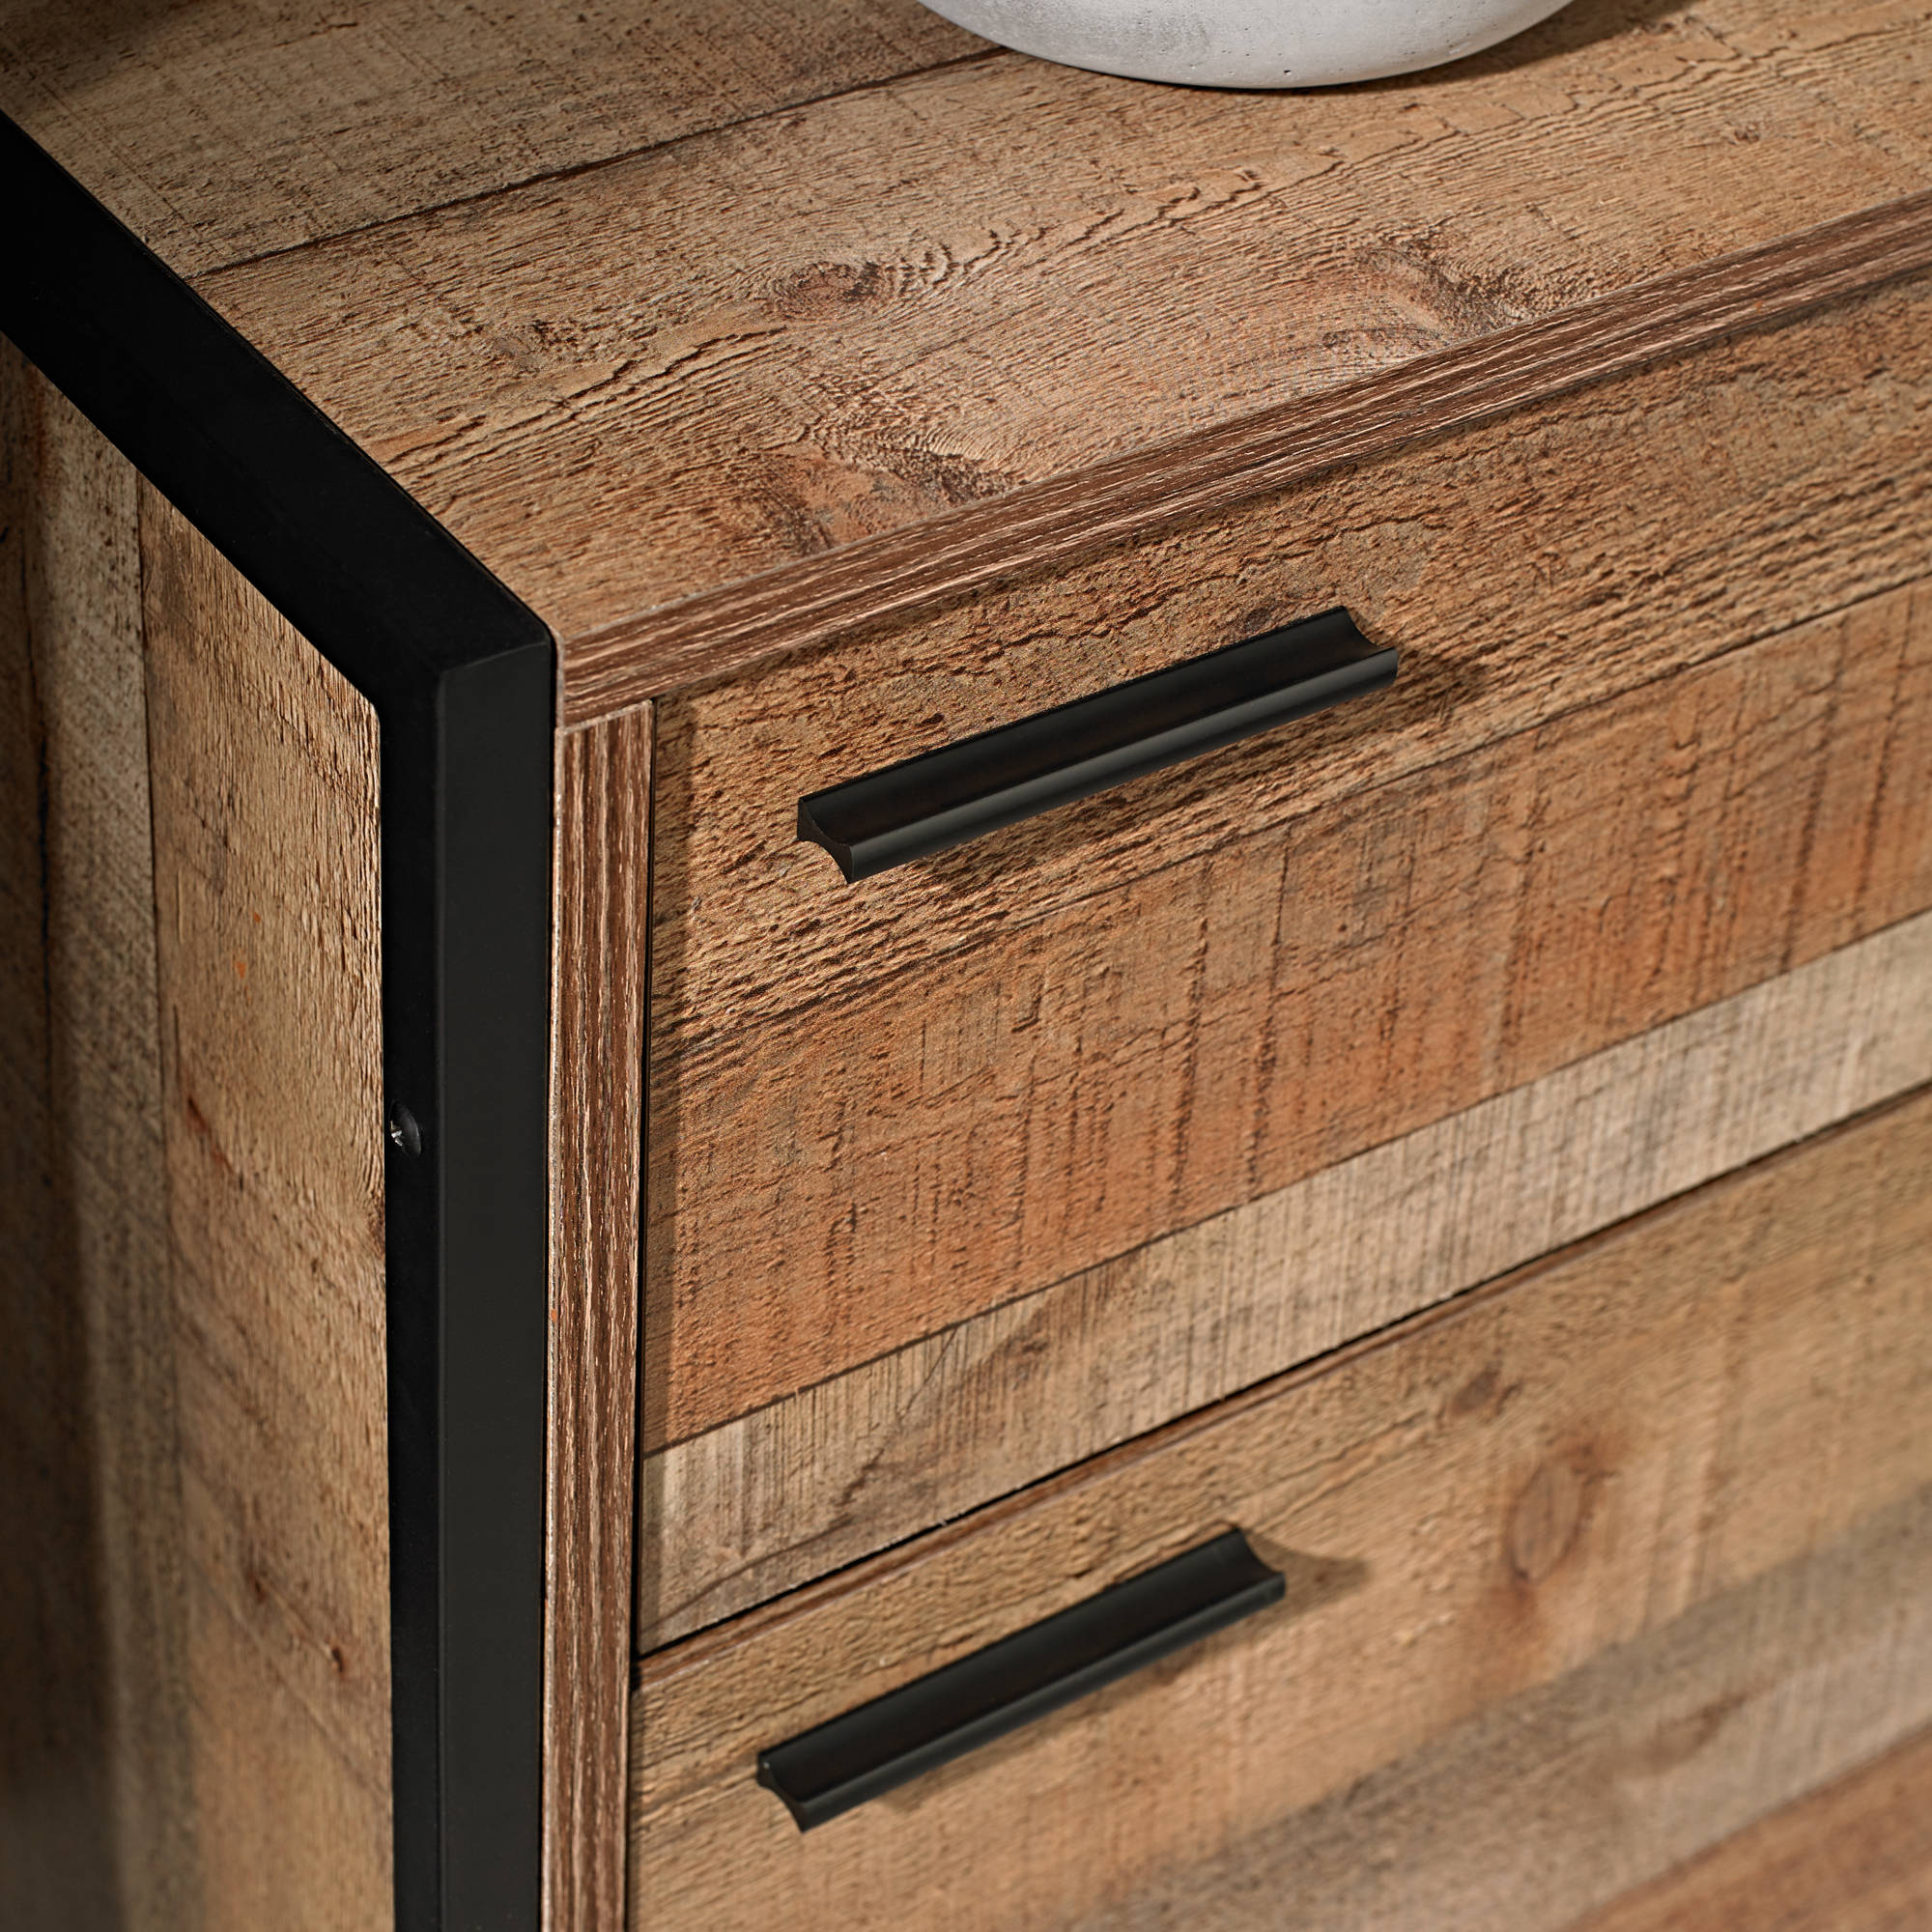 Aske 3 Drawer Chest of Drawers - Ezzo